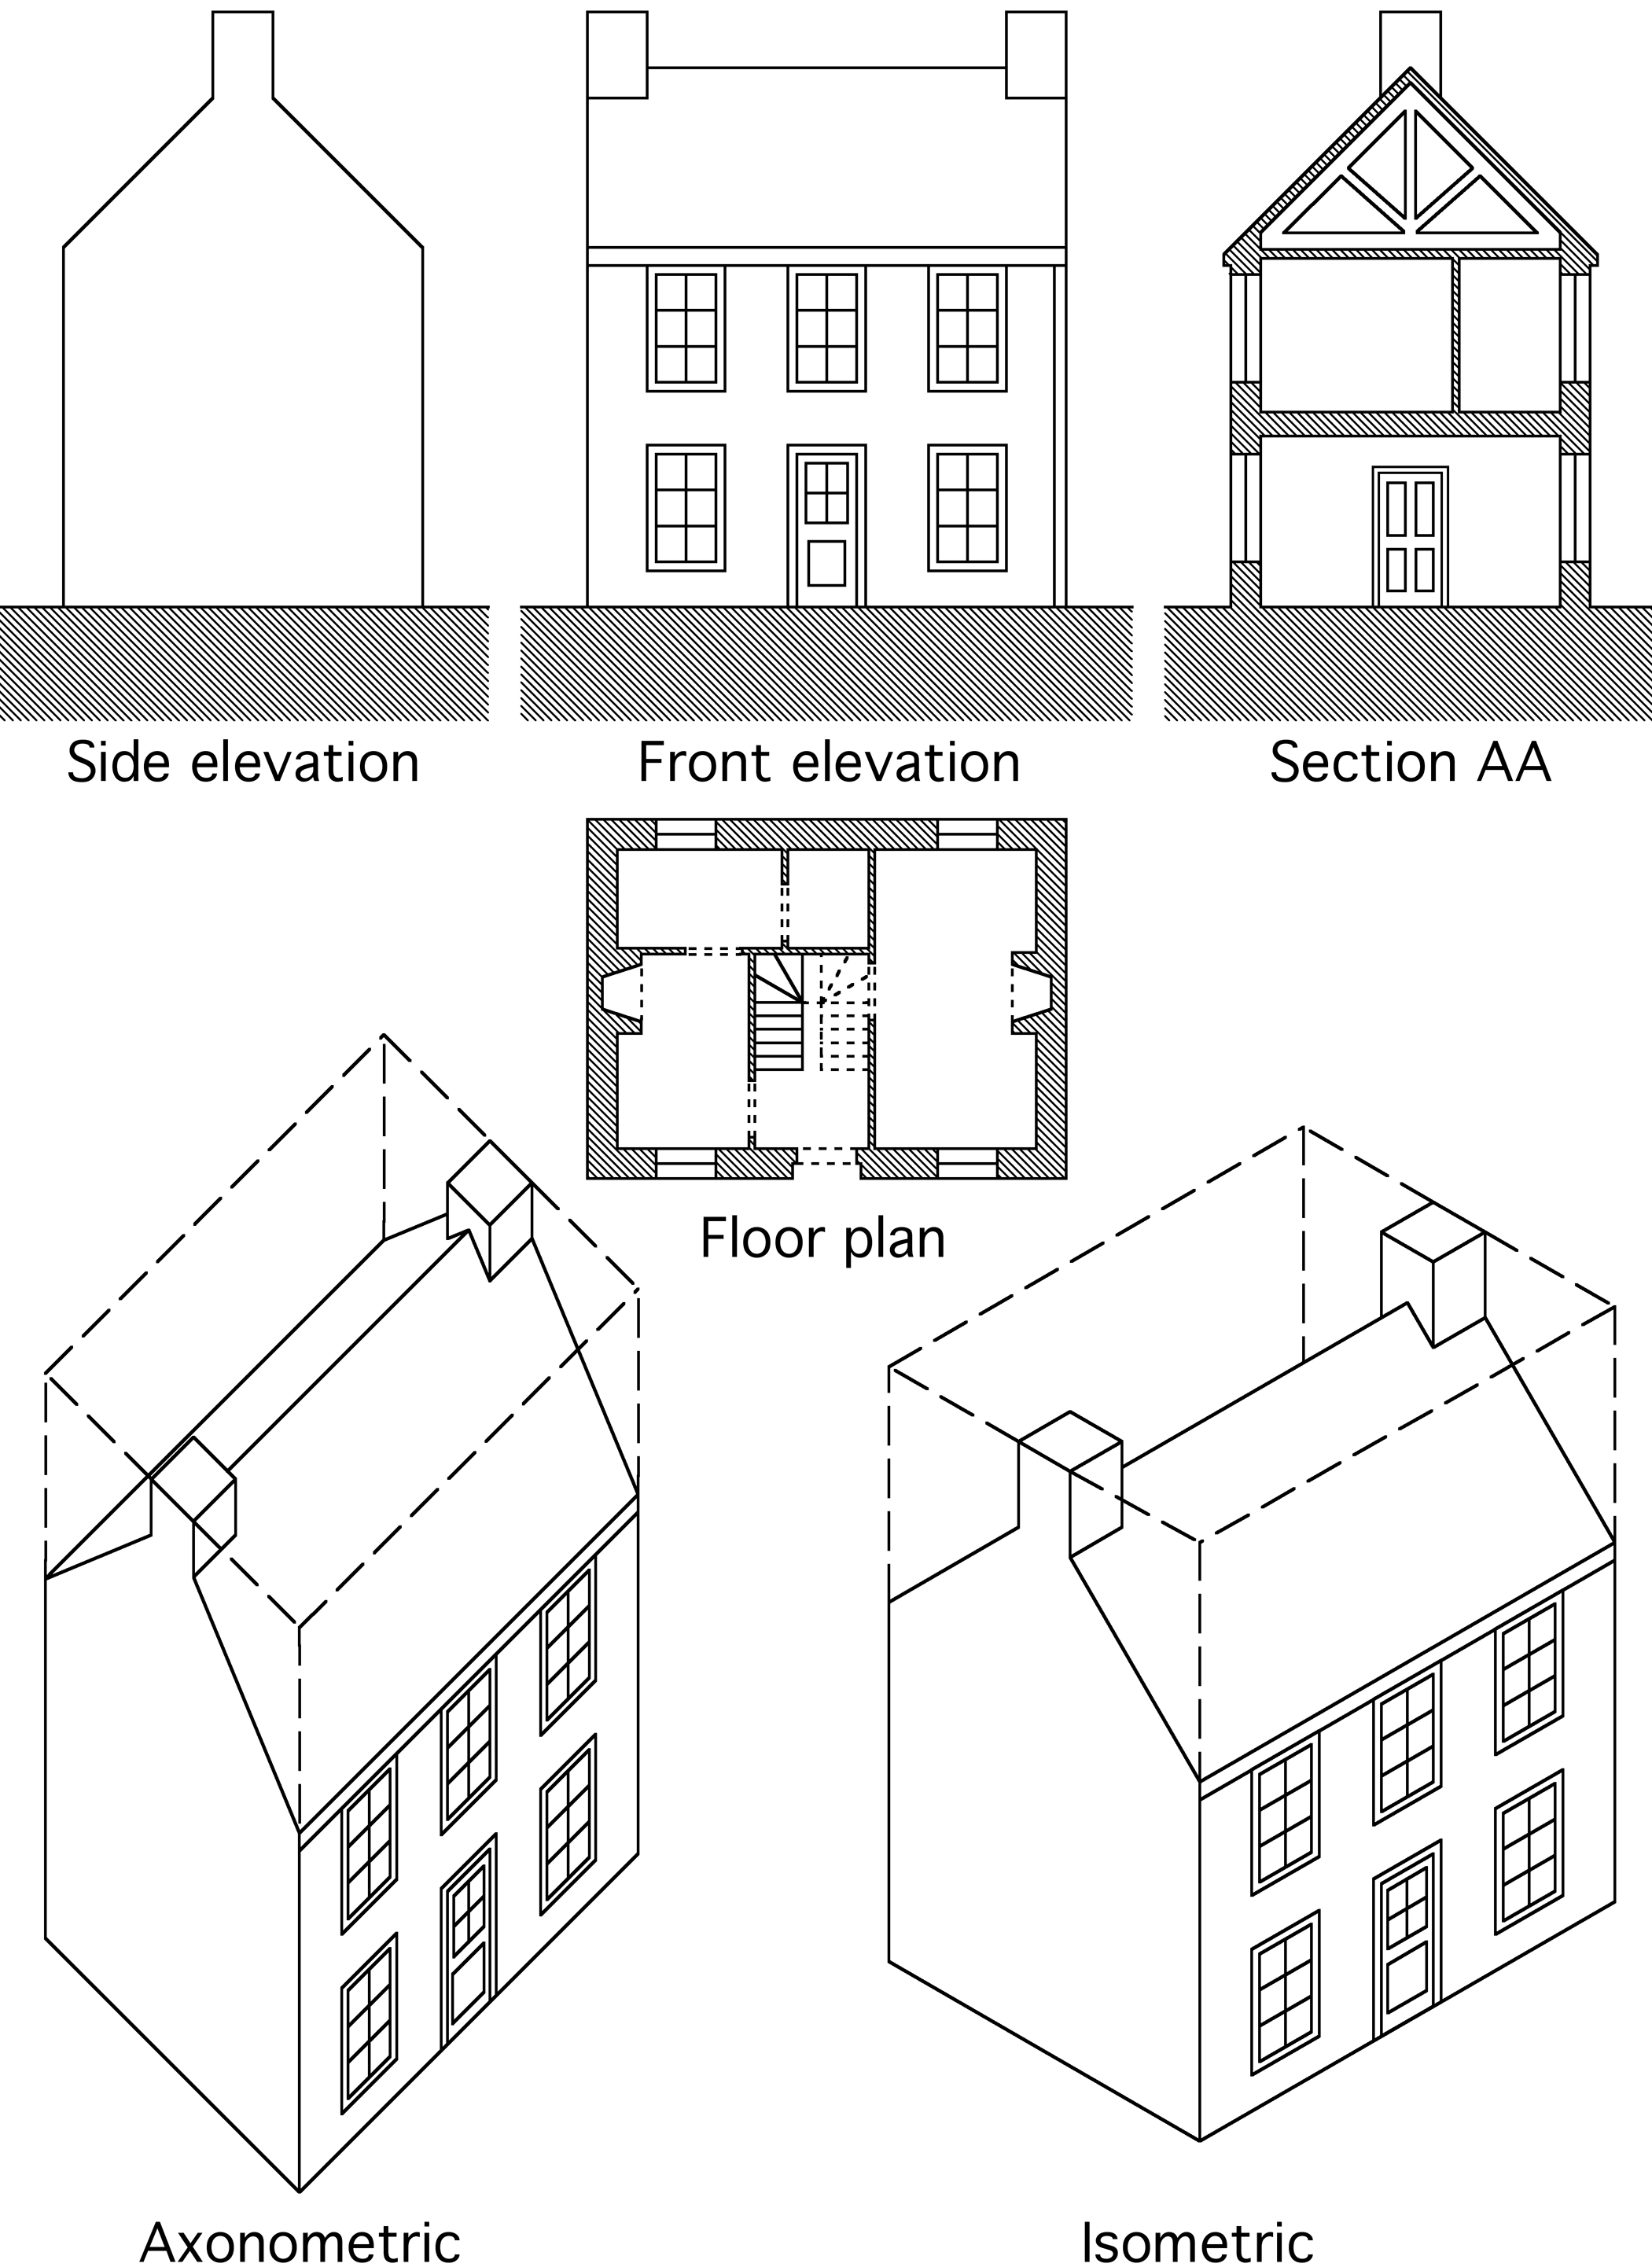 Front Elevation Oblique Drawing : Elevation oblique drawing google search hand sketches